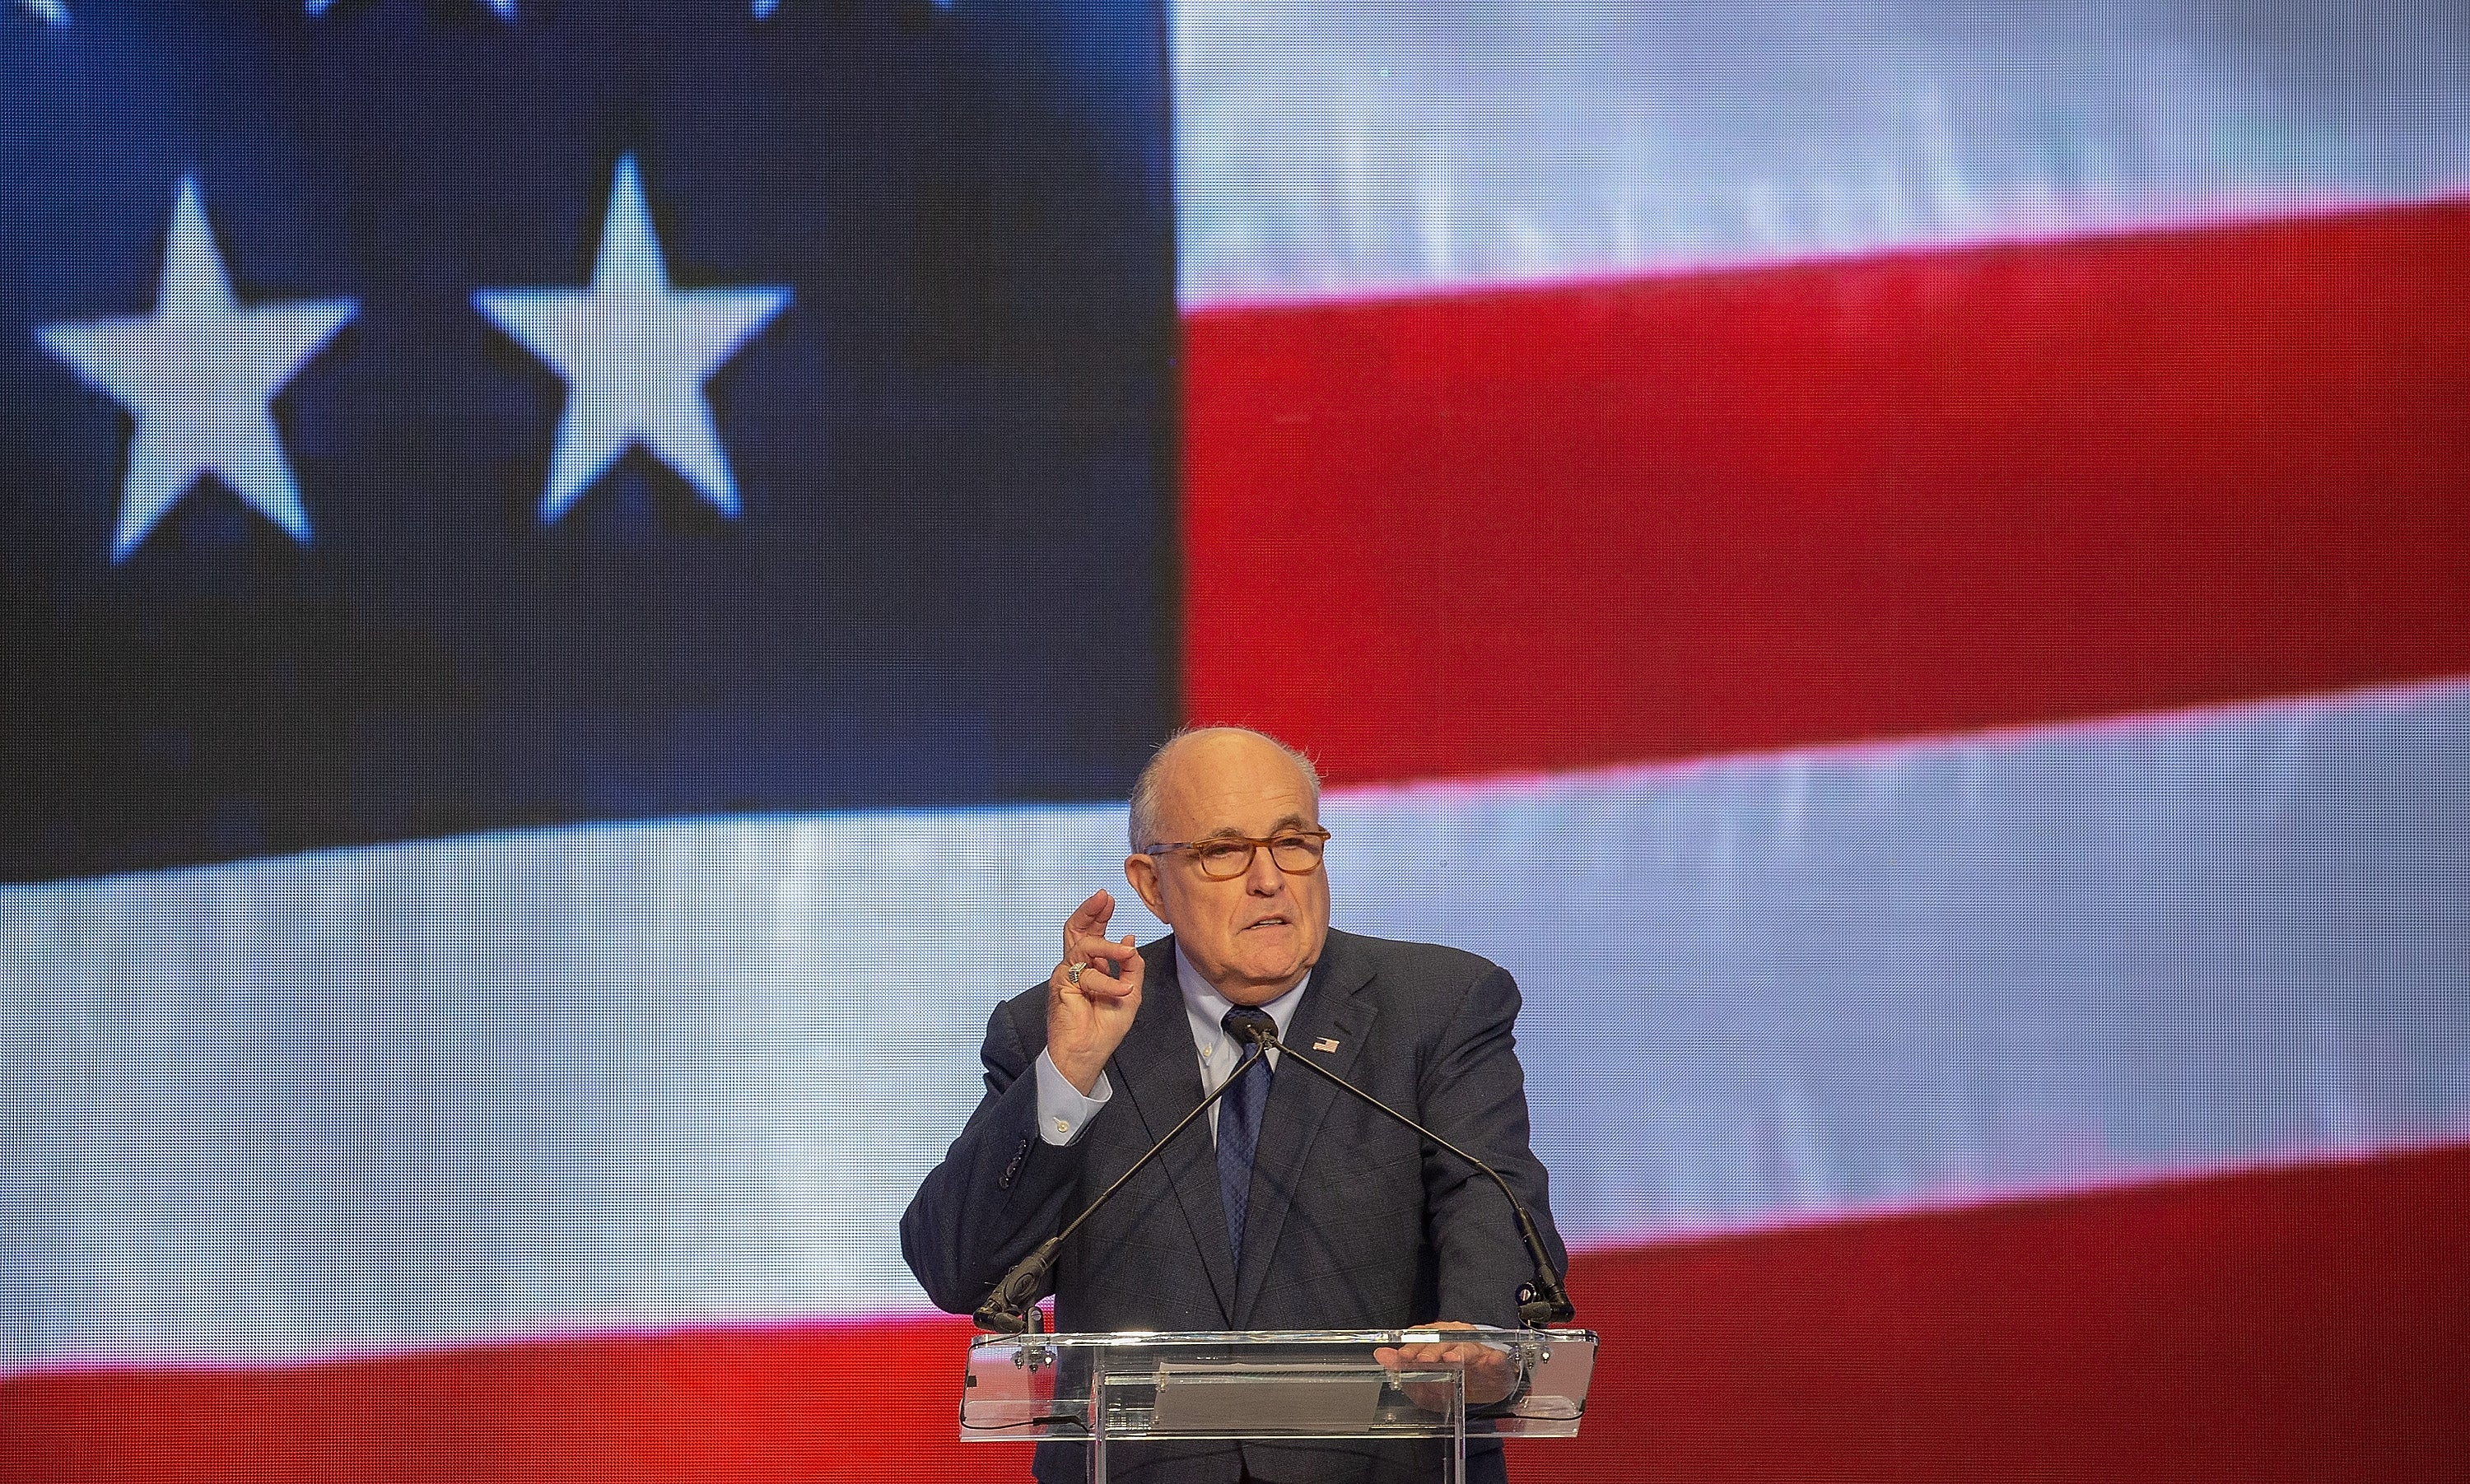 Rudy Giuliani speaks at a conference in front of an electronic American flag backdrop.